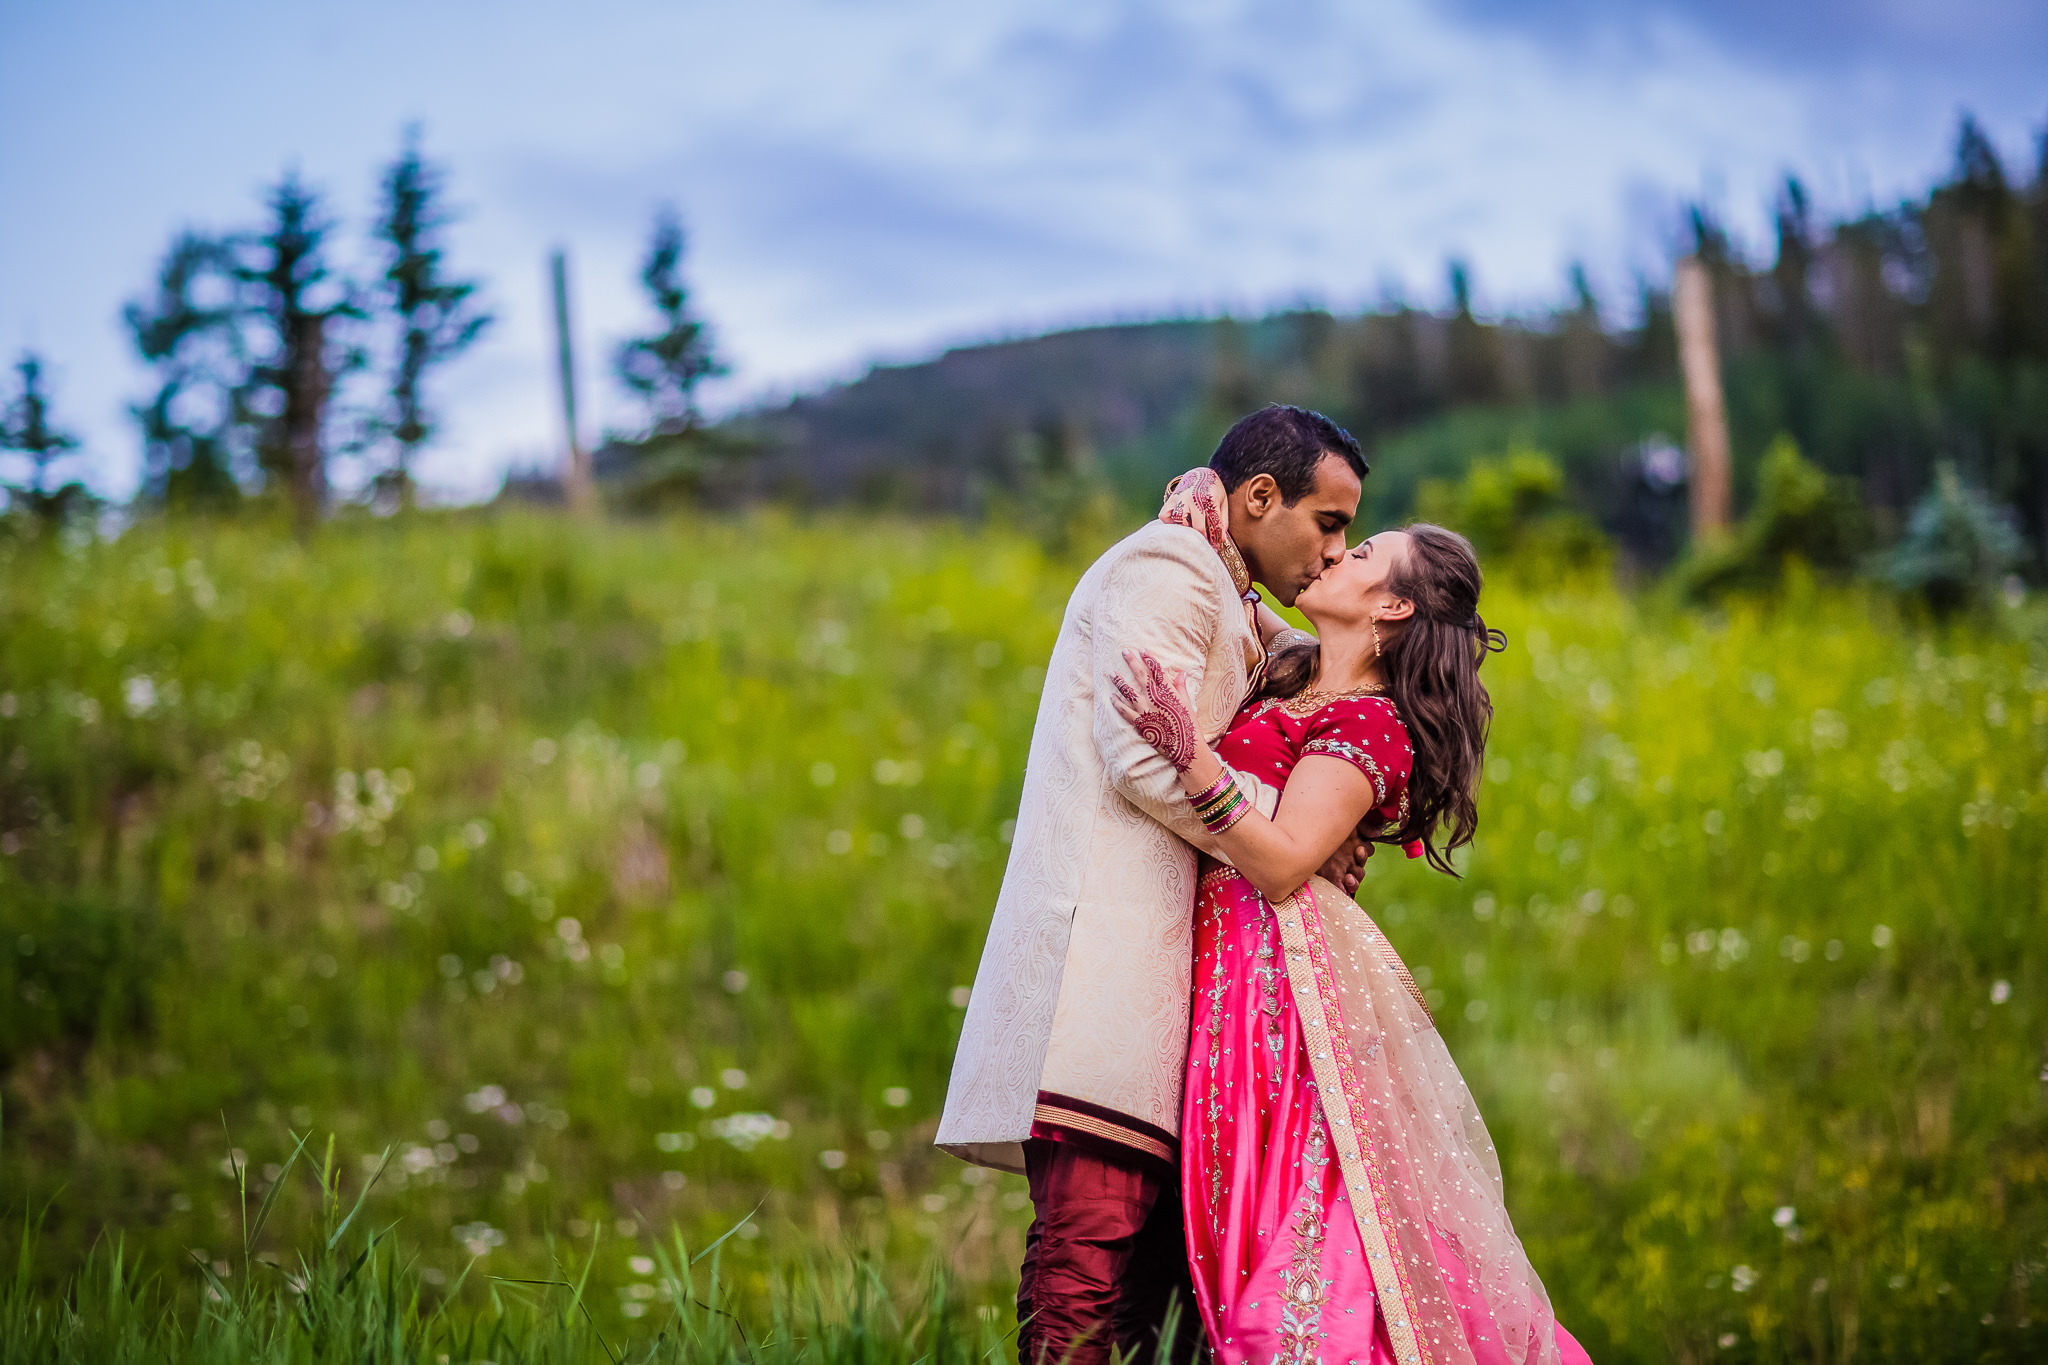 Interfaith Wedding in the Mountains - Bella Design & Planning